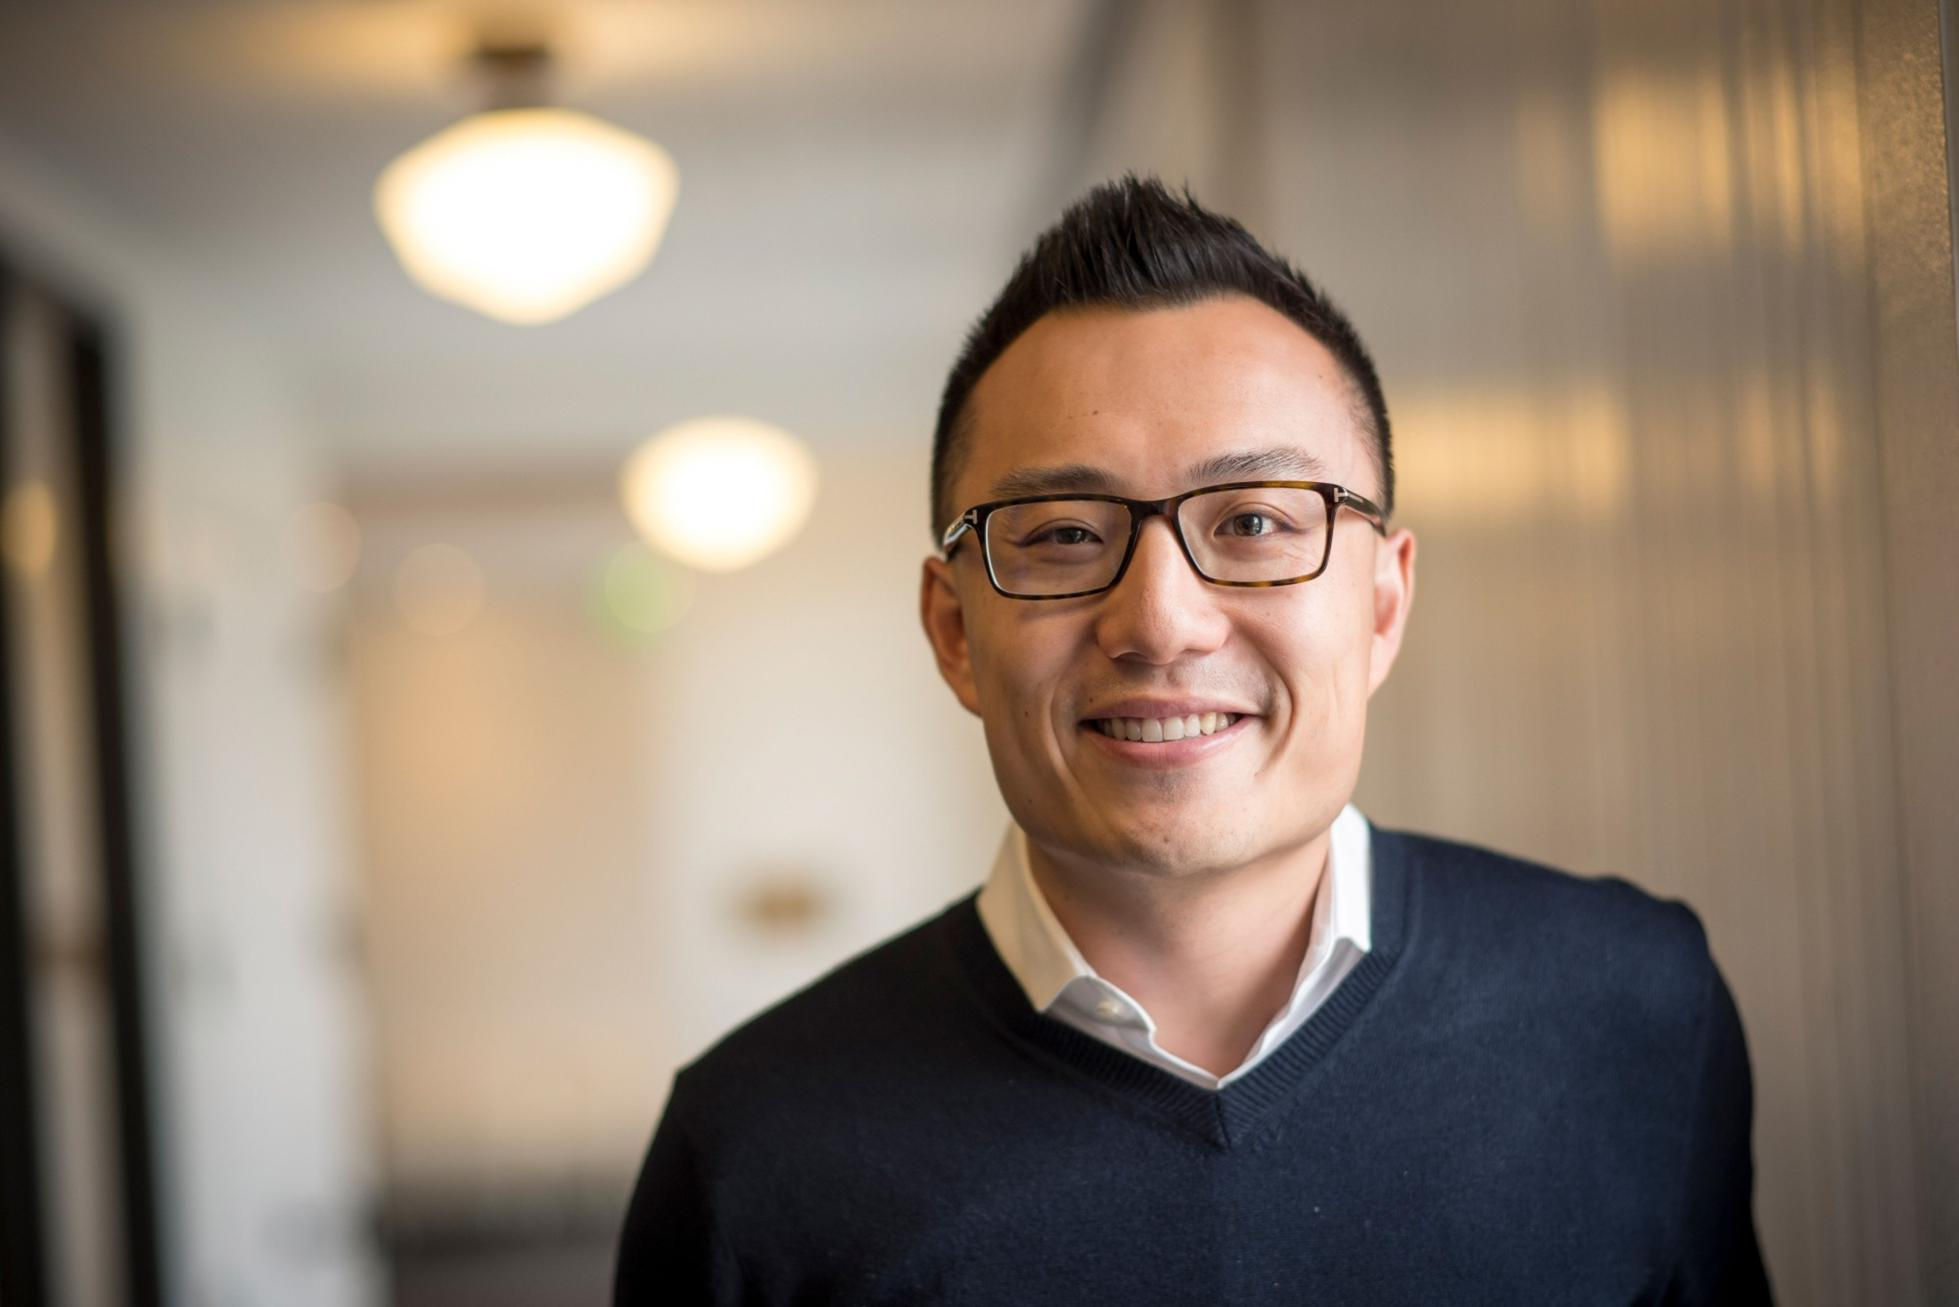 Doordash's Tony Xu: The food-delivery company made the cut for Forbes' Next Billion-Dollar Startups list in 2015, and is now worth more than $50 billion.